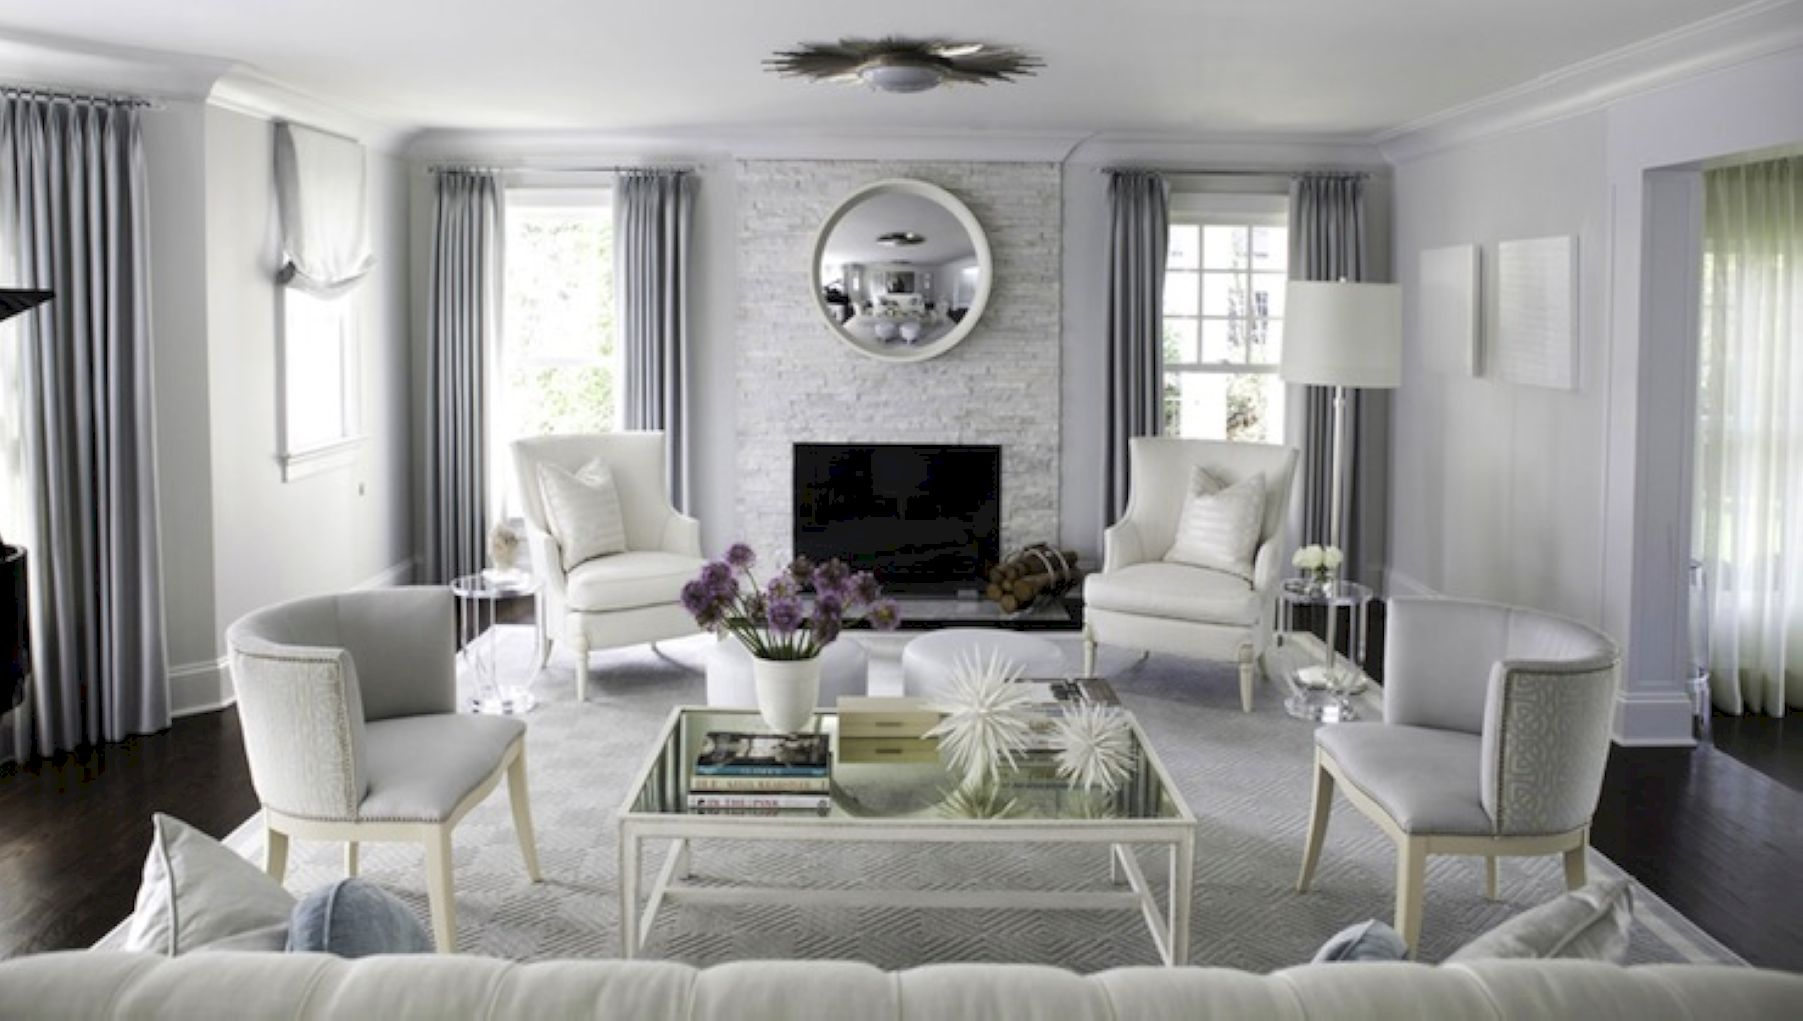 70 stunning gray and white living room decor ideas roundecor - Black and white and grey living room ...